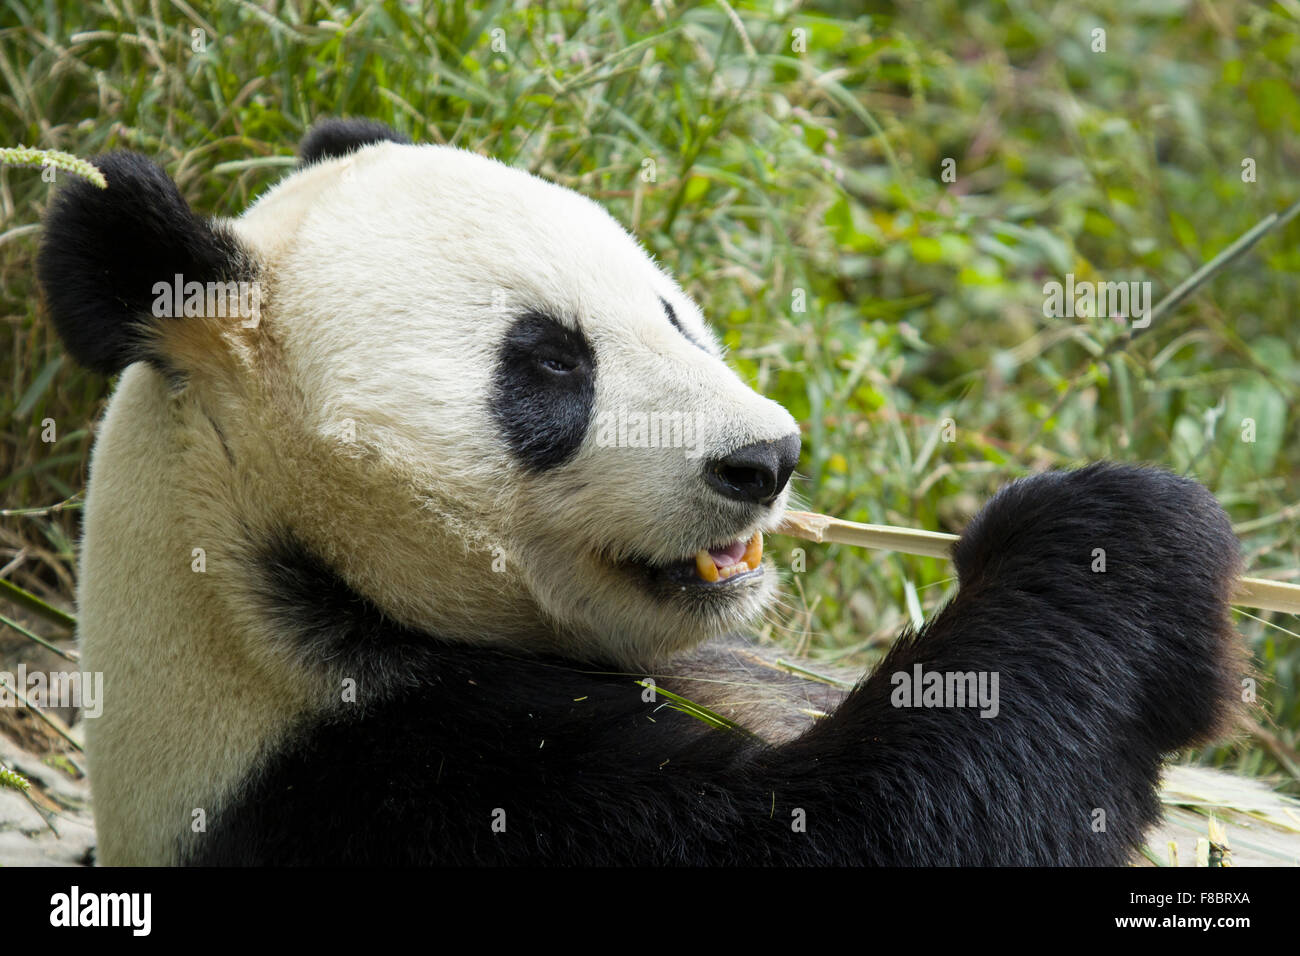 Panda eating Bamboo Chengdu Panda Breeding Centre Sichuan Province China MA003083 - Stock Image